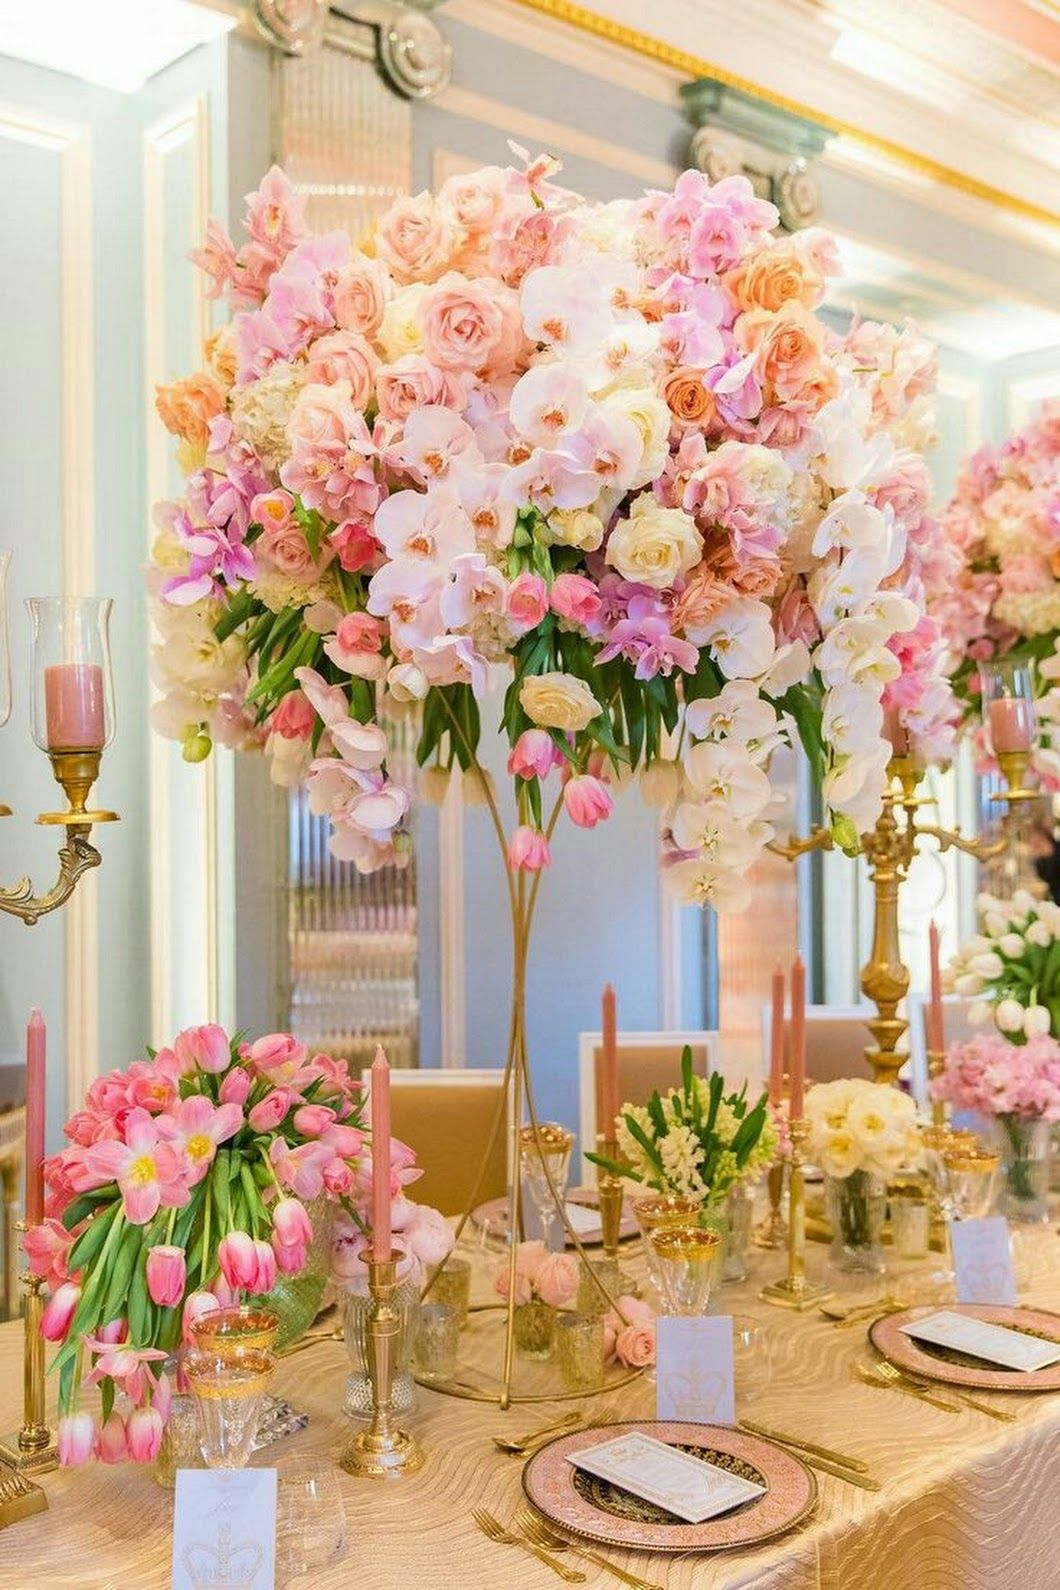 Pin By Hunny Adam On Home Decoret Wedding Decorations For Sale